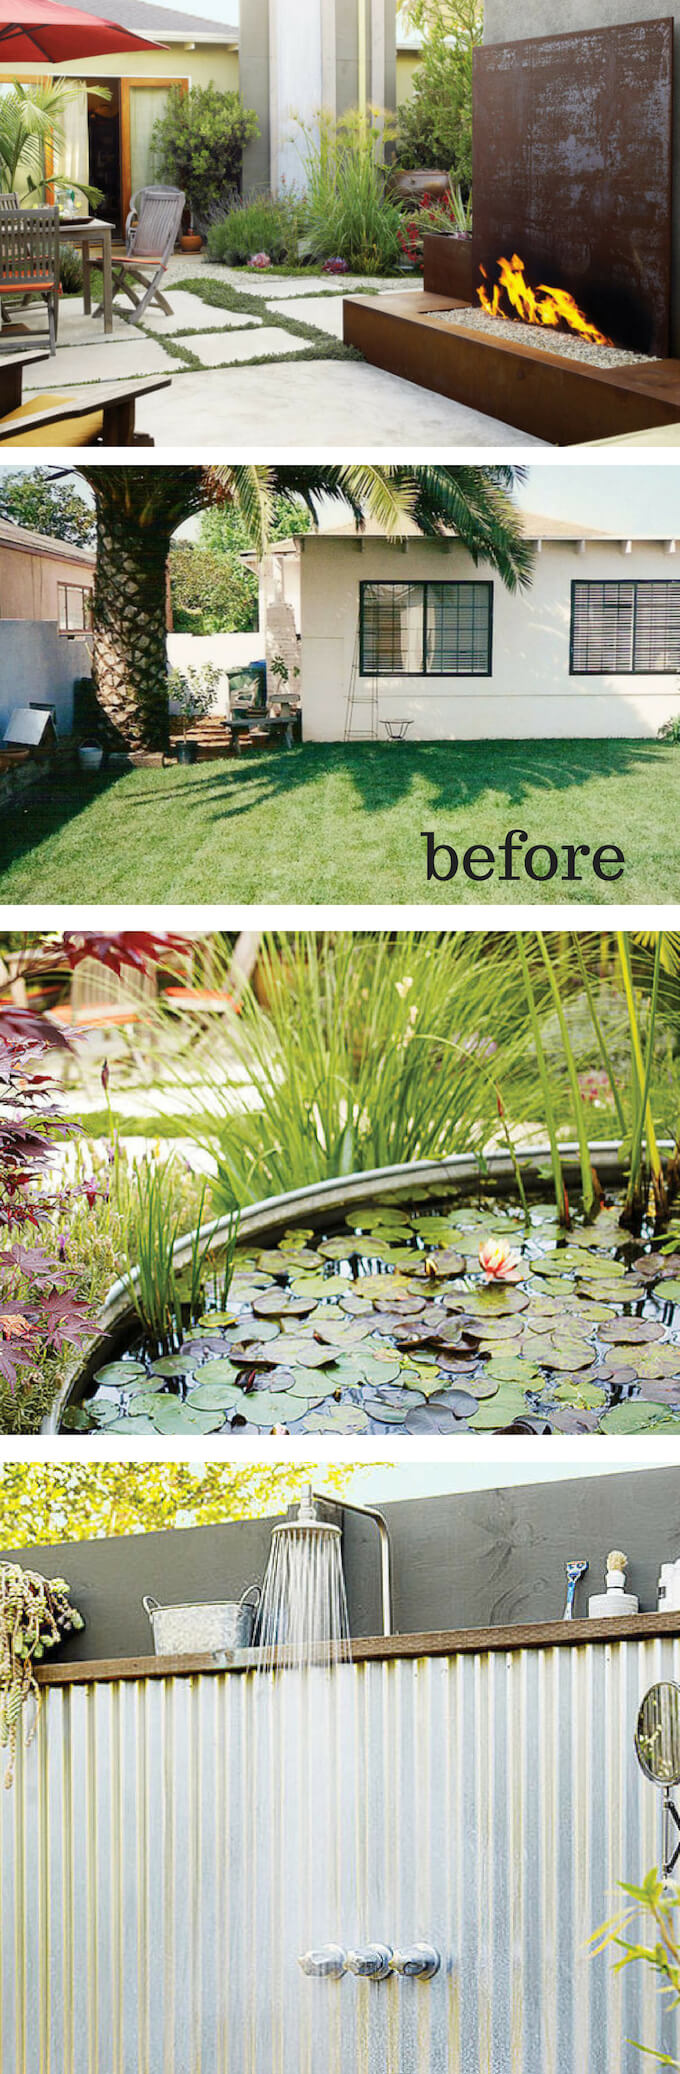 44+ Ideas For Landscape the Yard Without Grass | Alternatives to the Manicured Lawn | FarmFoodFamily.com